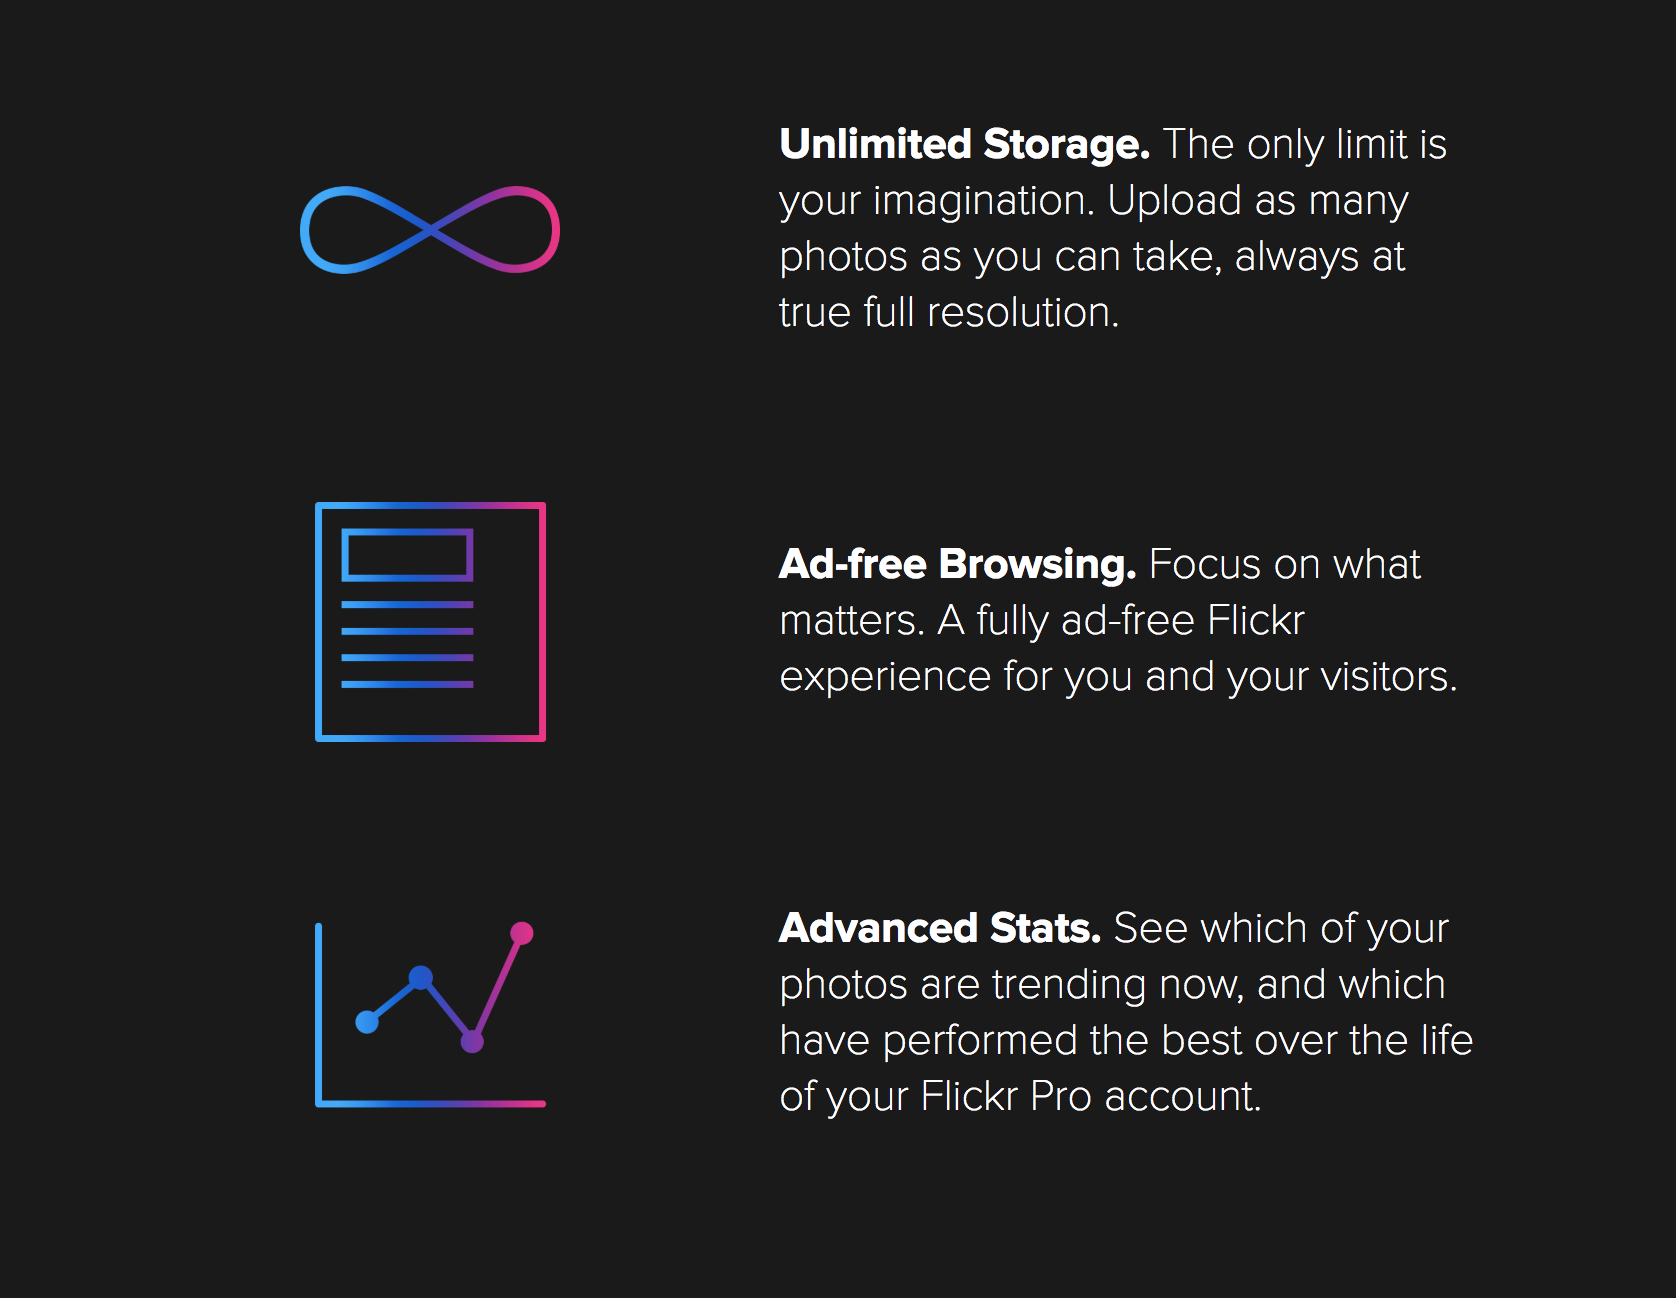 Flickr Pro features